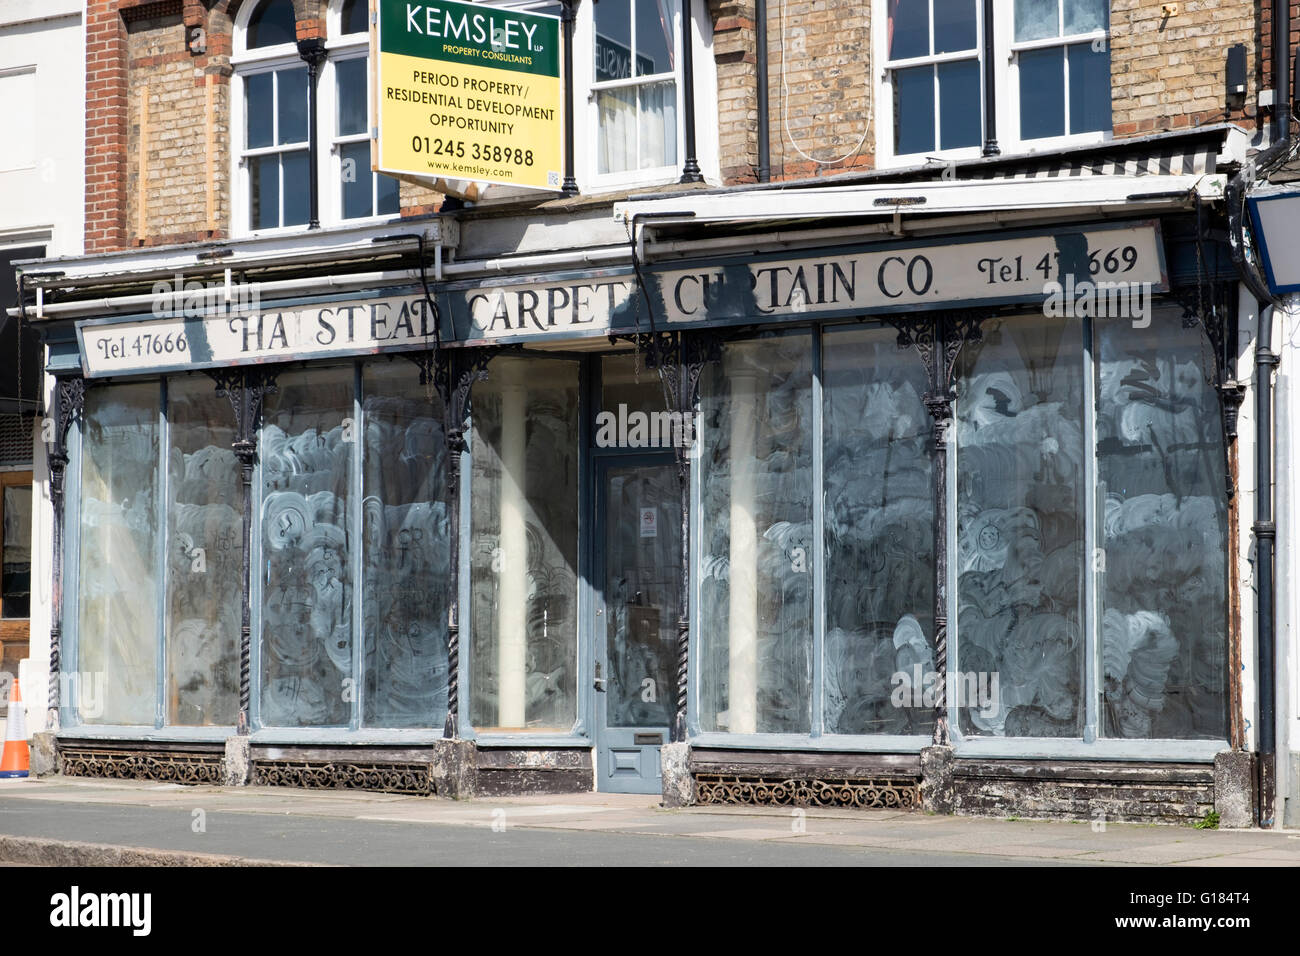 Kemsley property consultants, agents for an empty shop, Halstead, Essex, UK. - Stock Image